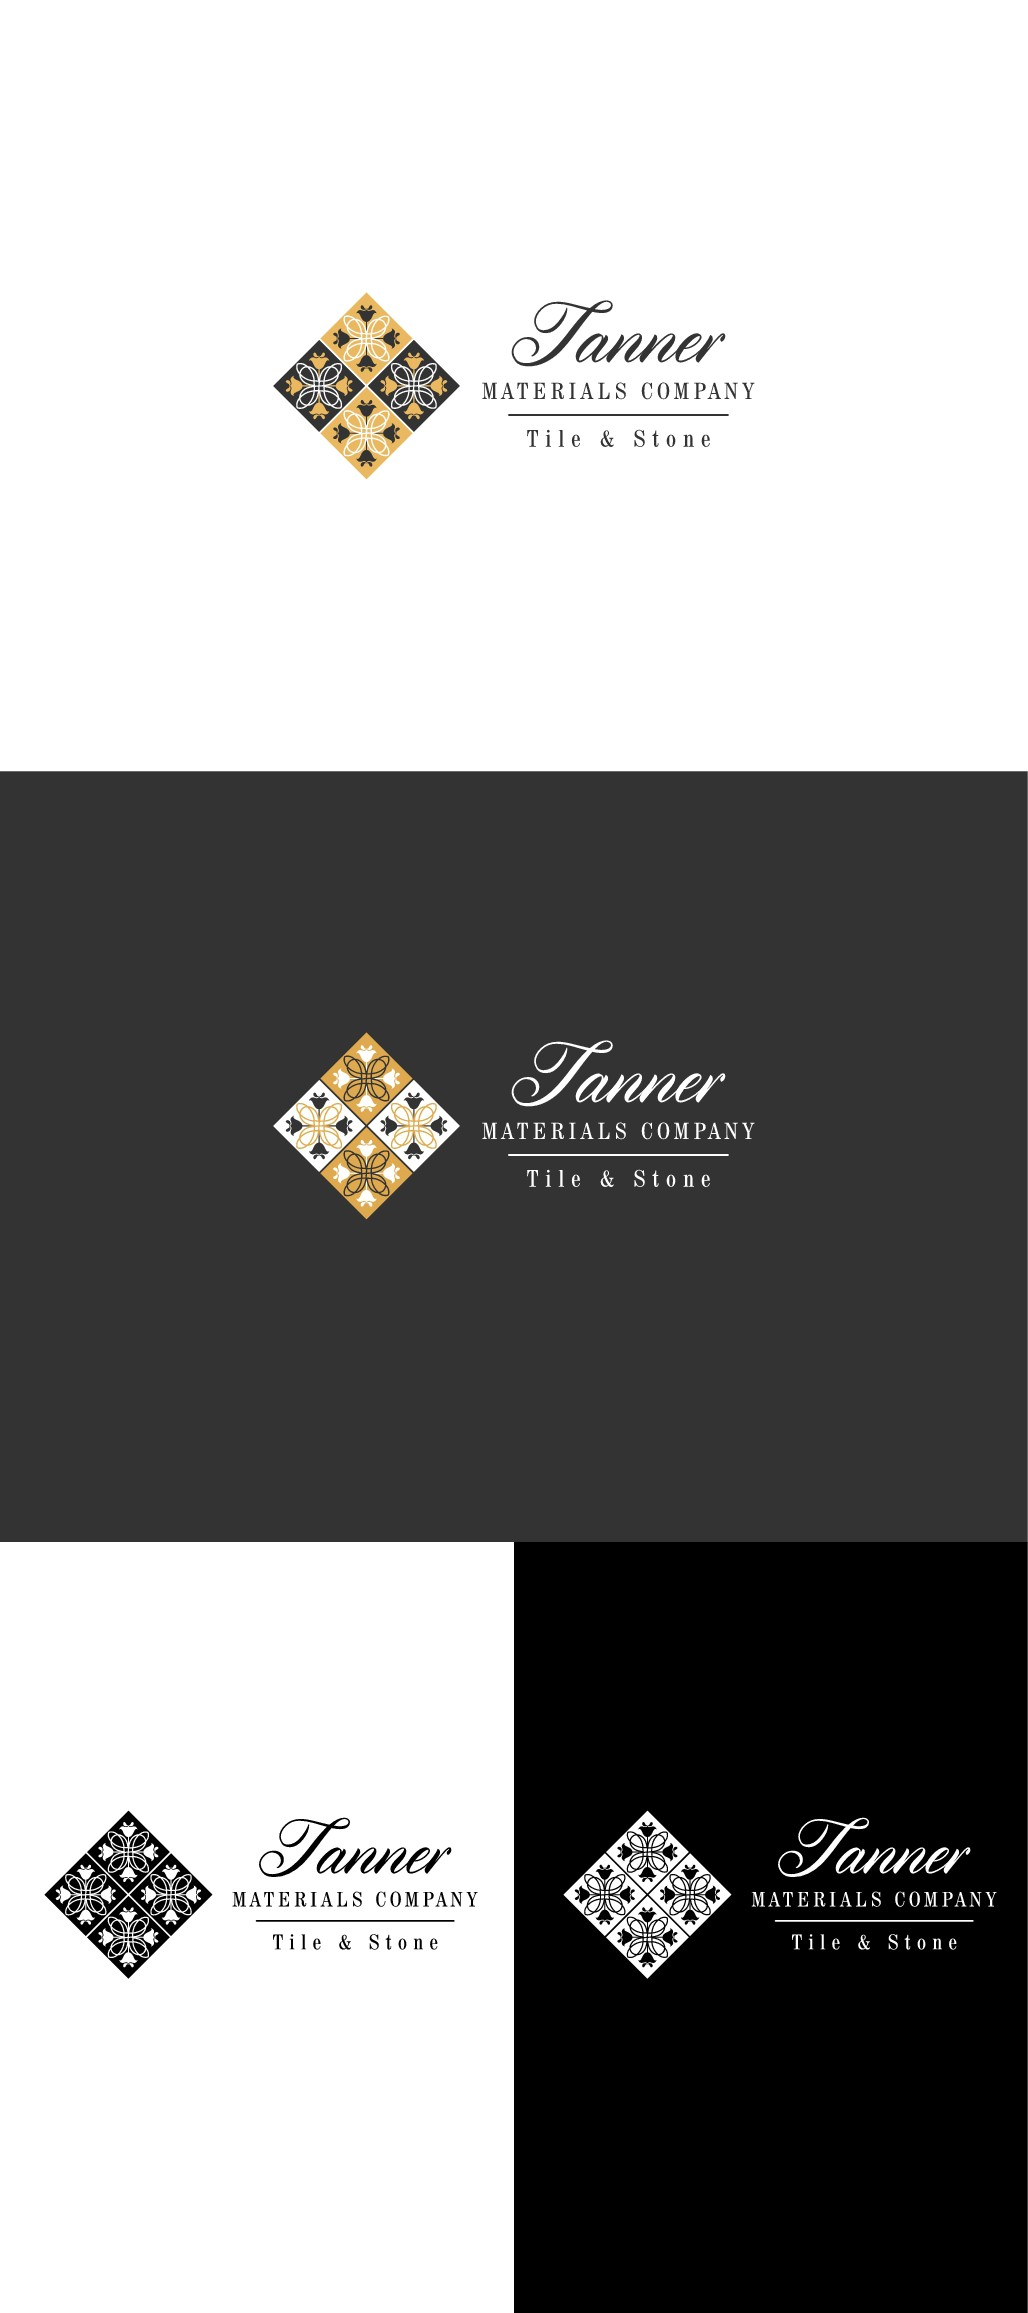 Tanner Materials Company needs a simple, soft, and elegant logo